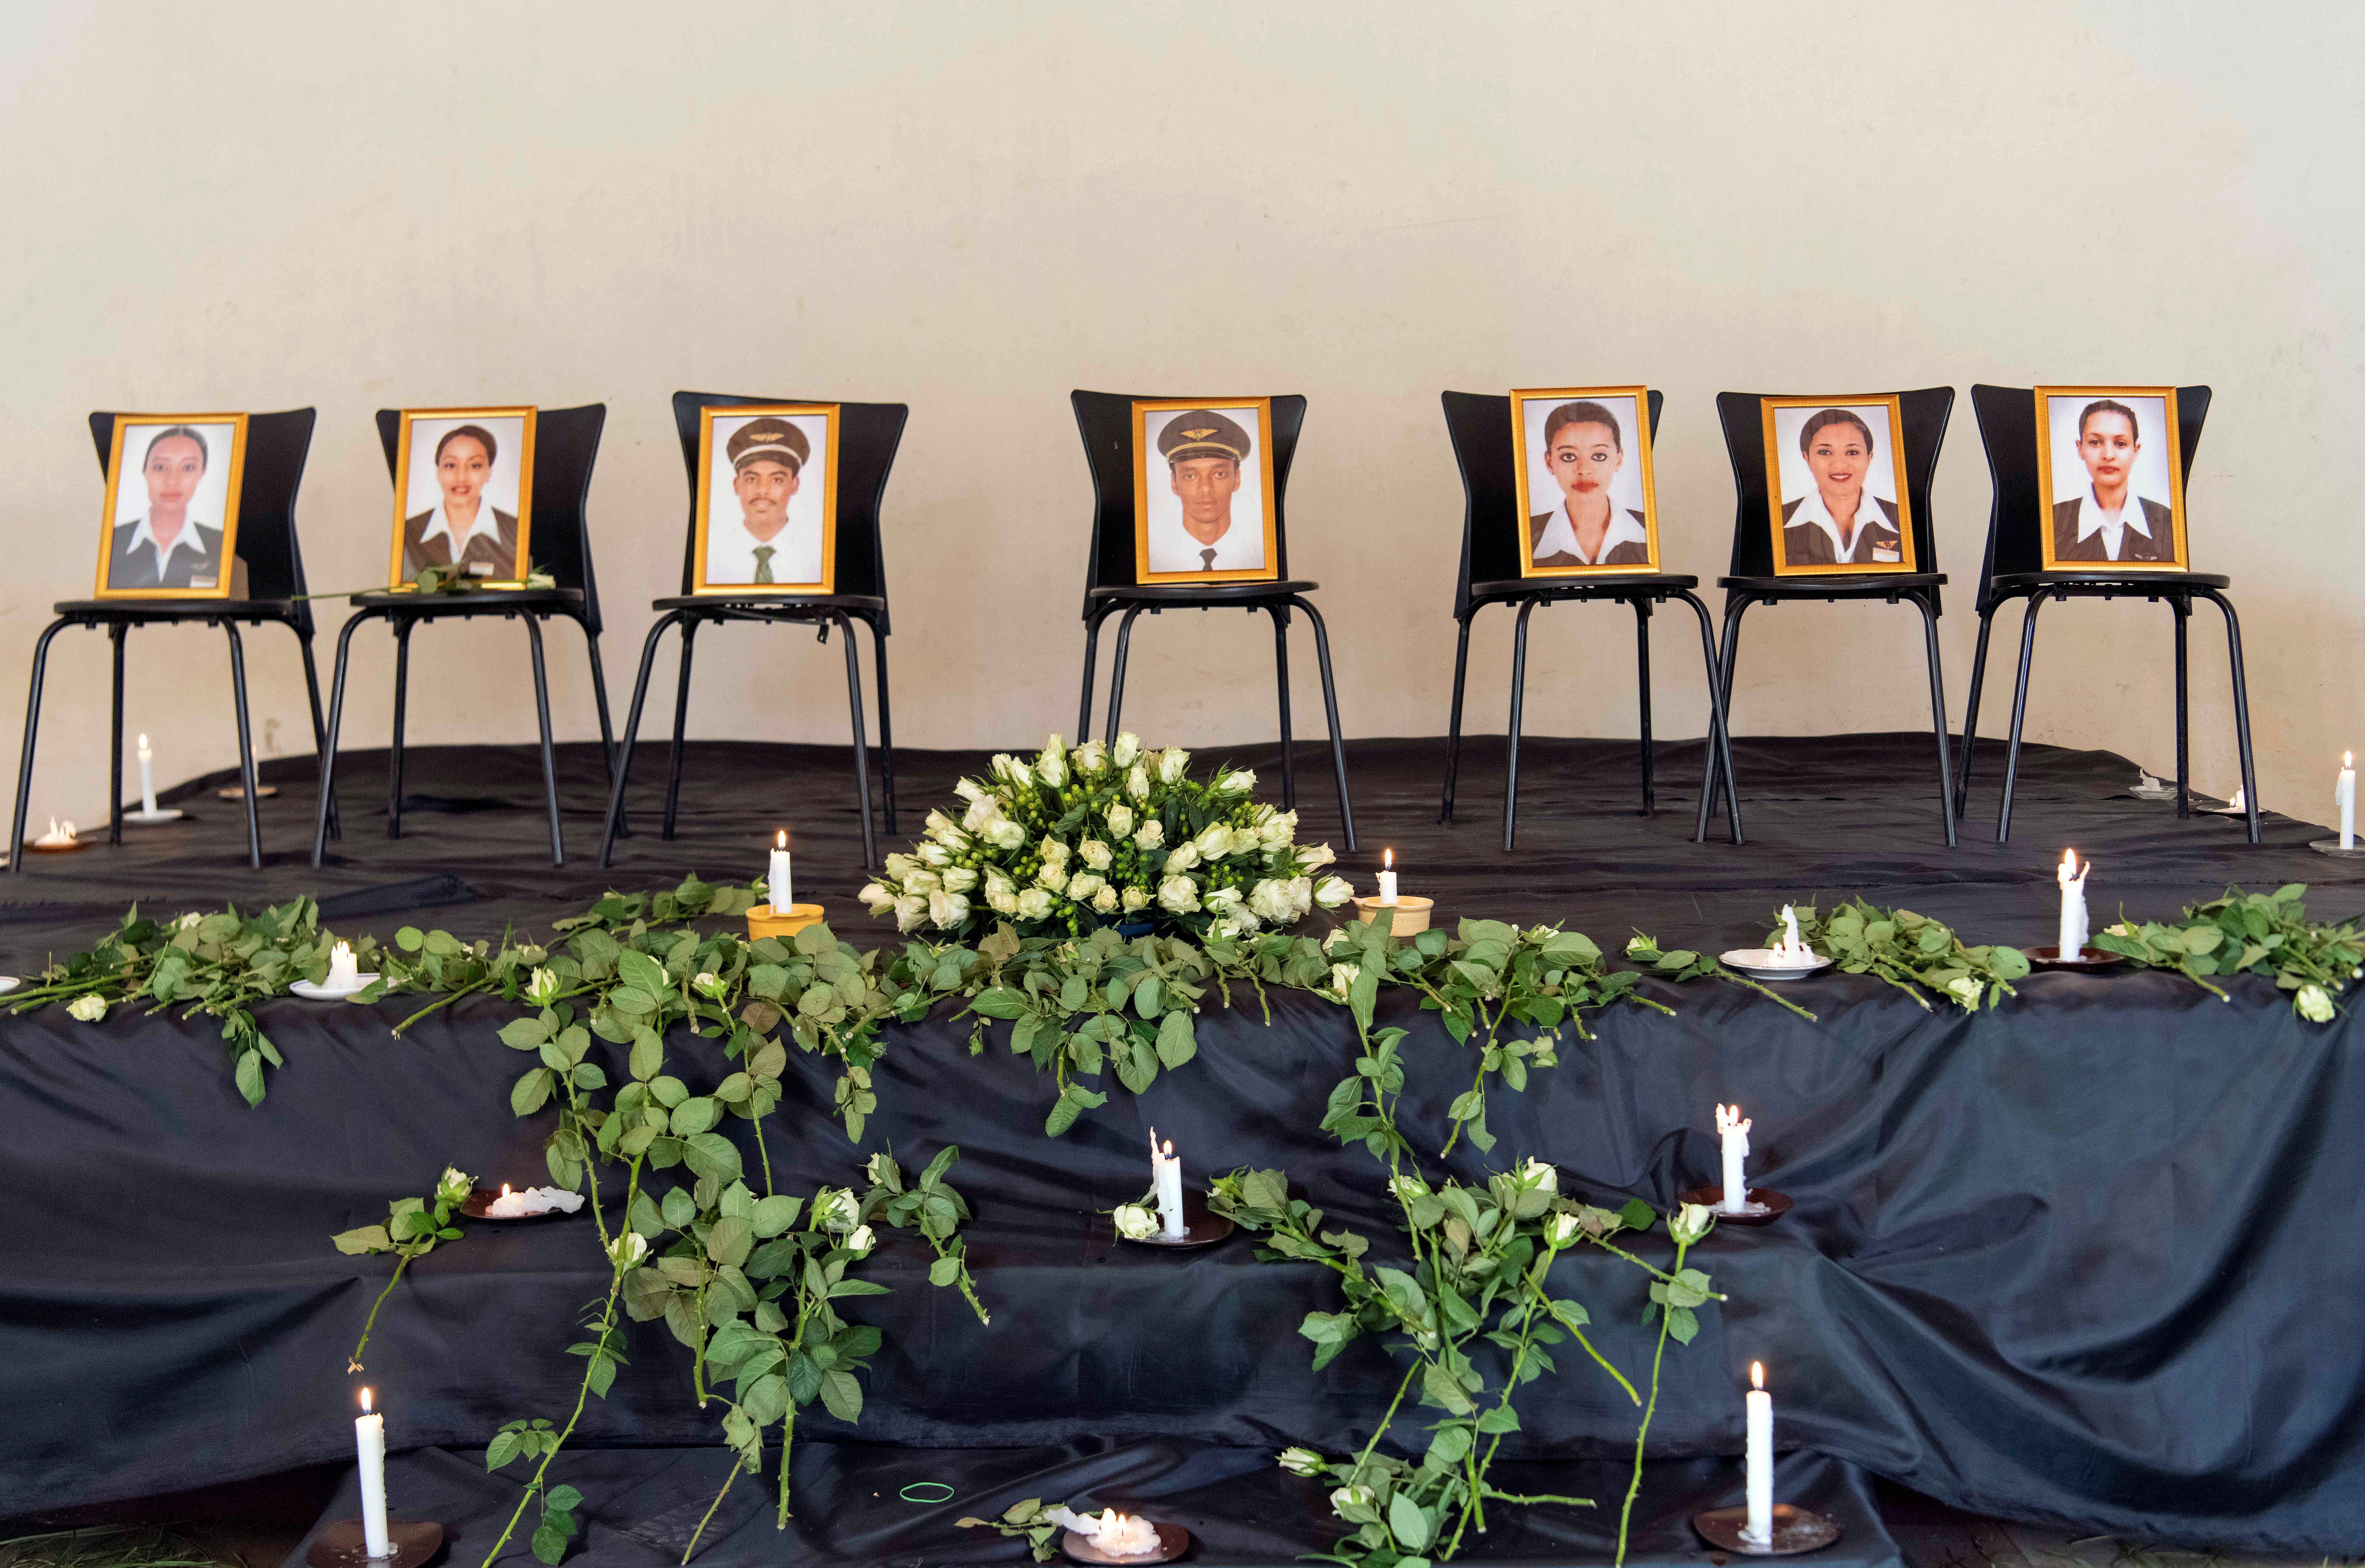 Photographs of crew members of the Ethiopian Airlines Flight ET 302 plane that crashed are seen during a memorial service by members of the Ethiopian Airline Pilots' Association in Addis Ababa, Ethiopia, March 11, 2019.